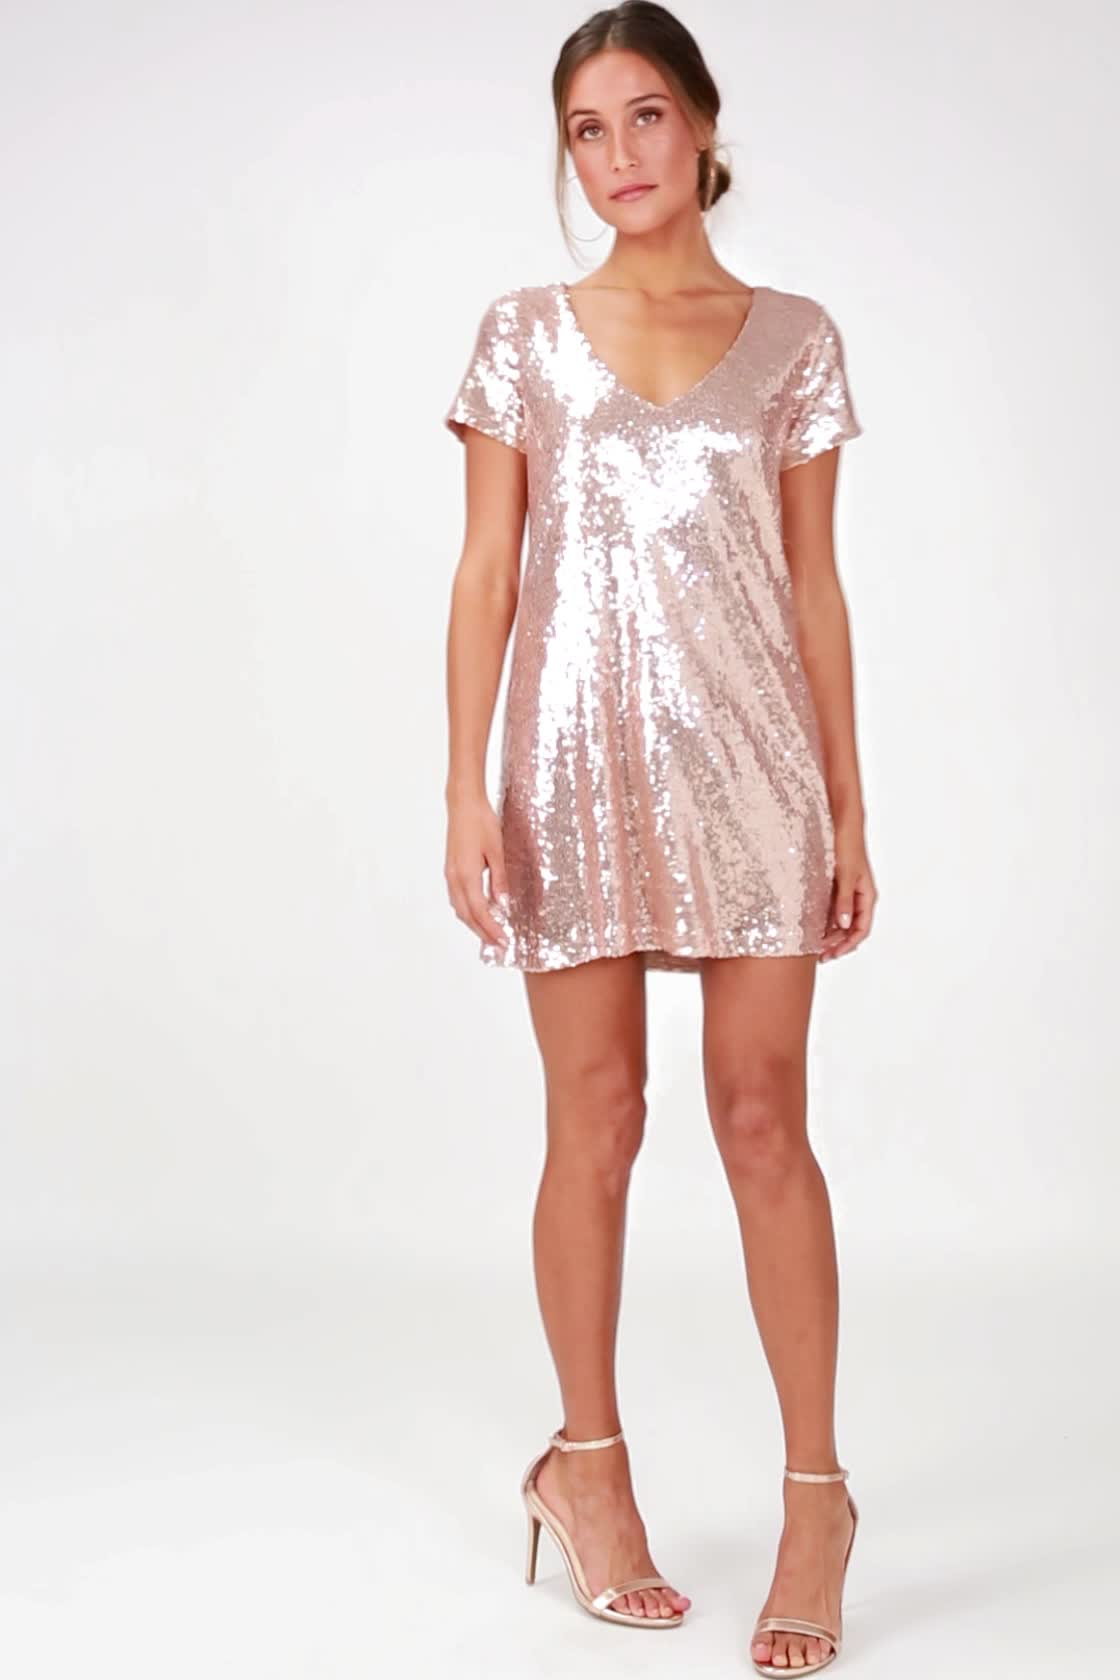 31f5ea6d8b1a Champagne Sequin Dress - Sequin Shift Dress - Mini Dress